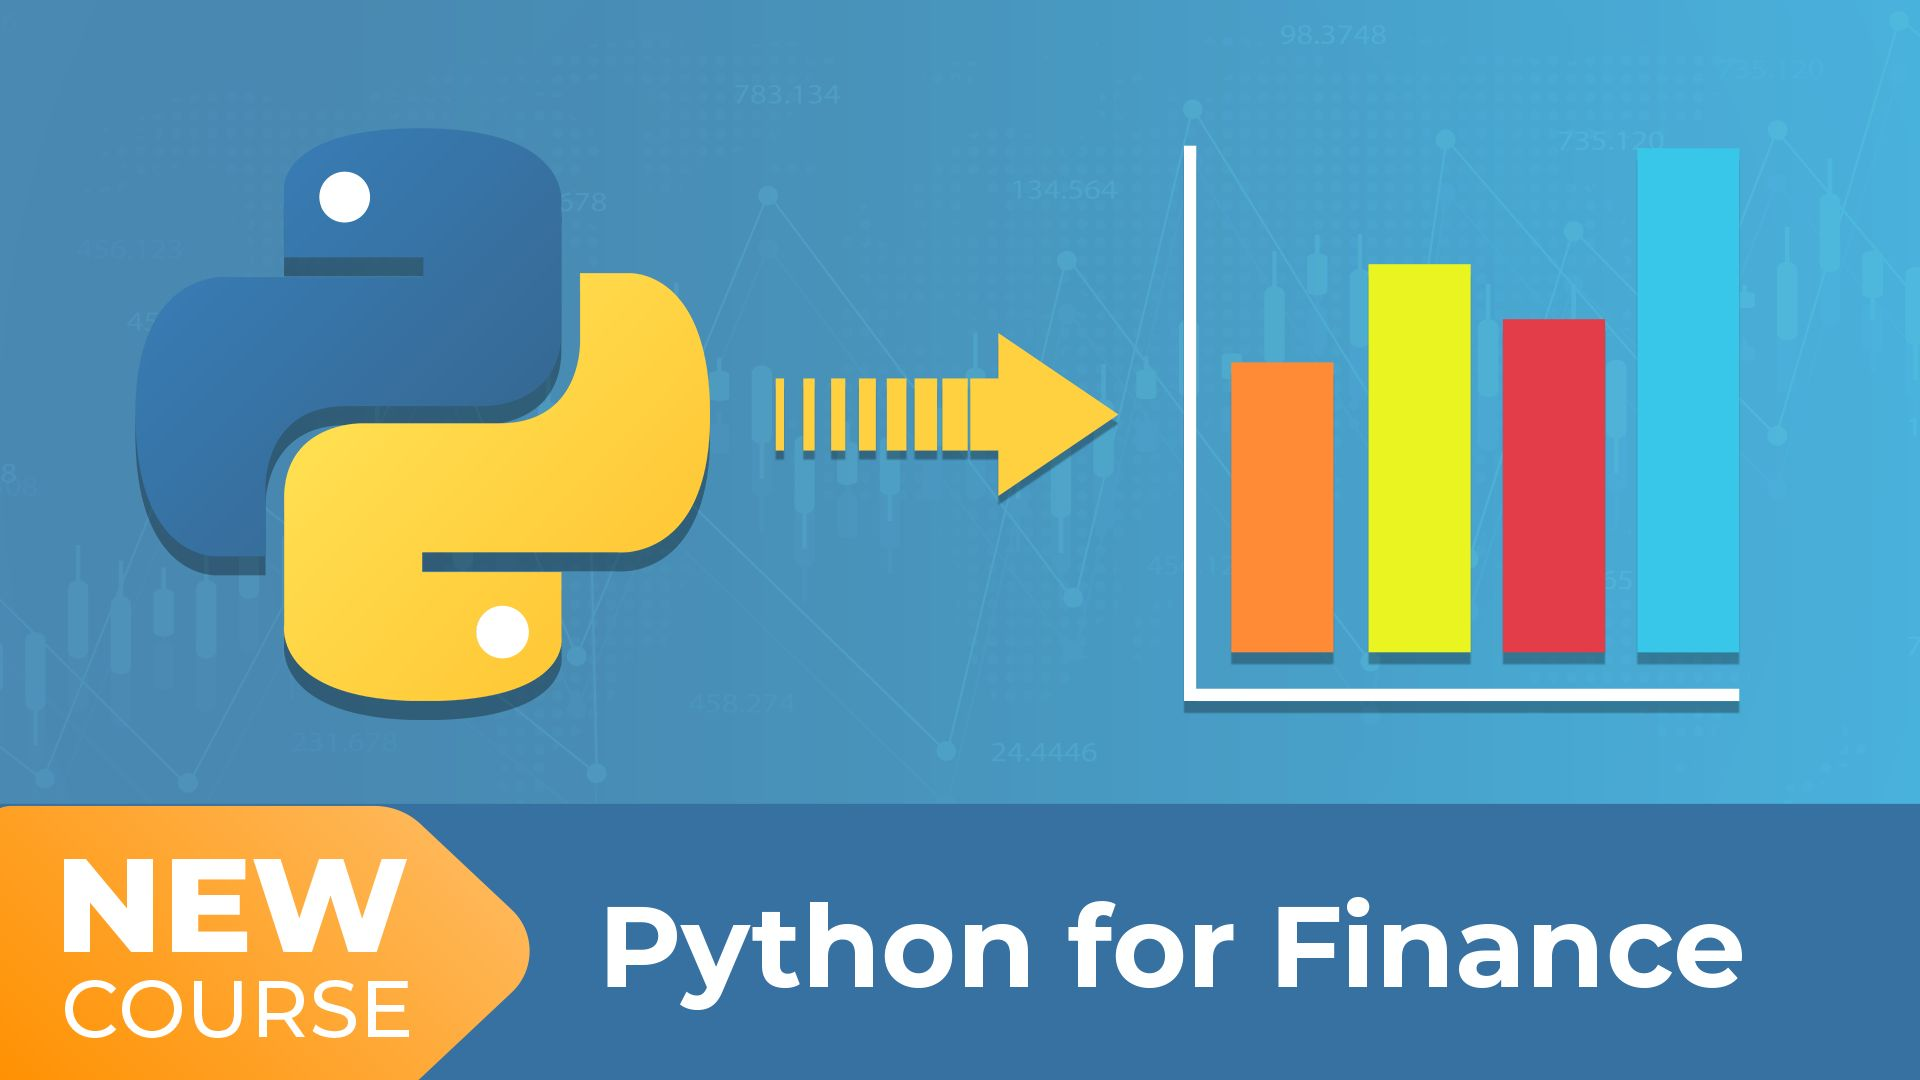 New Course! Python for Finance!